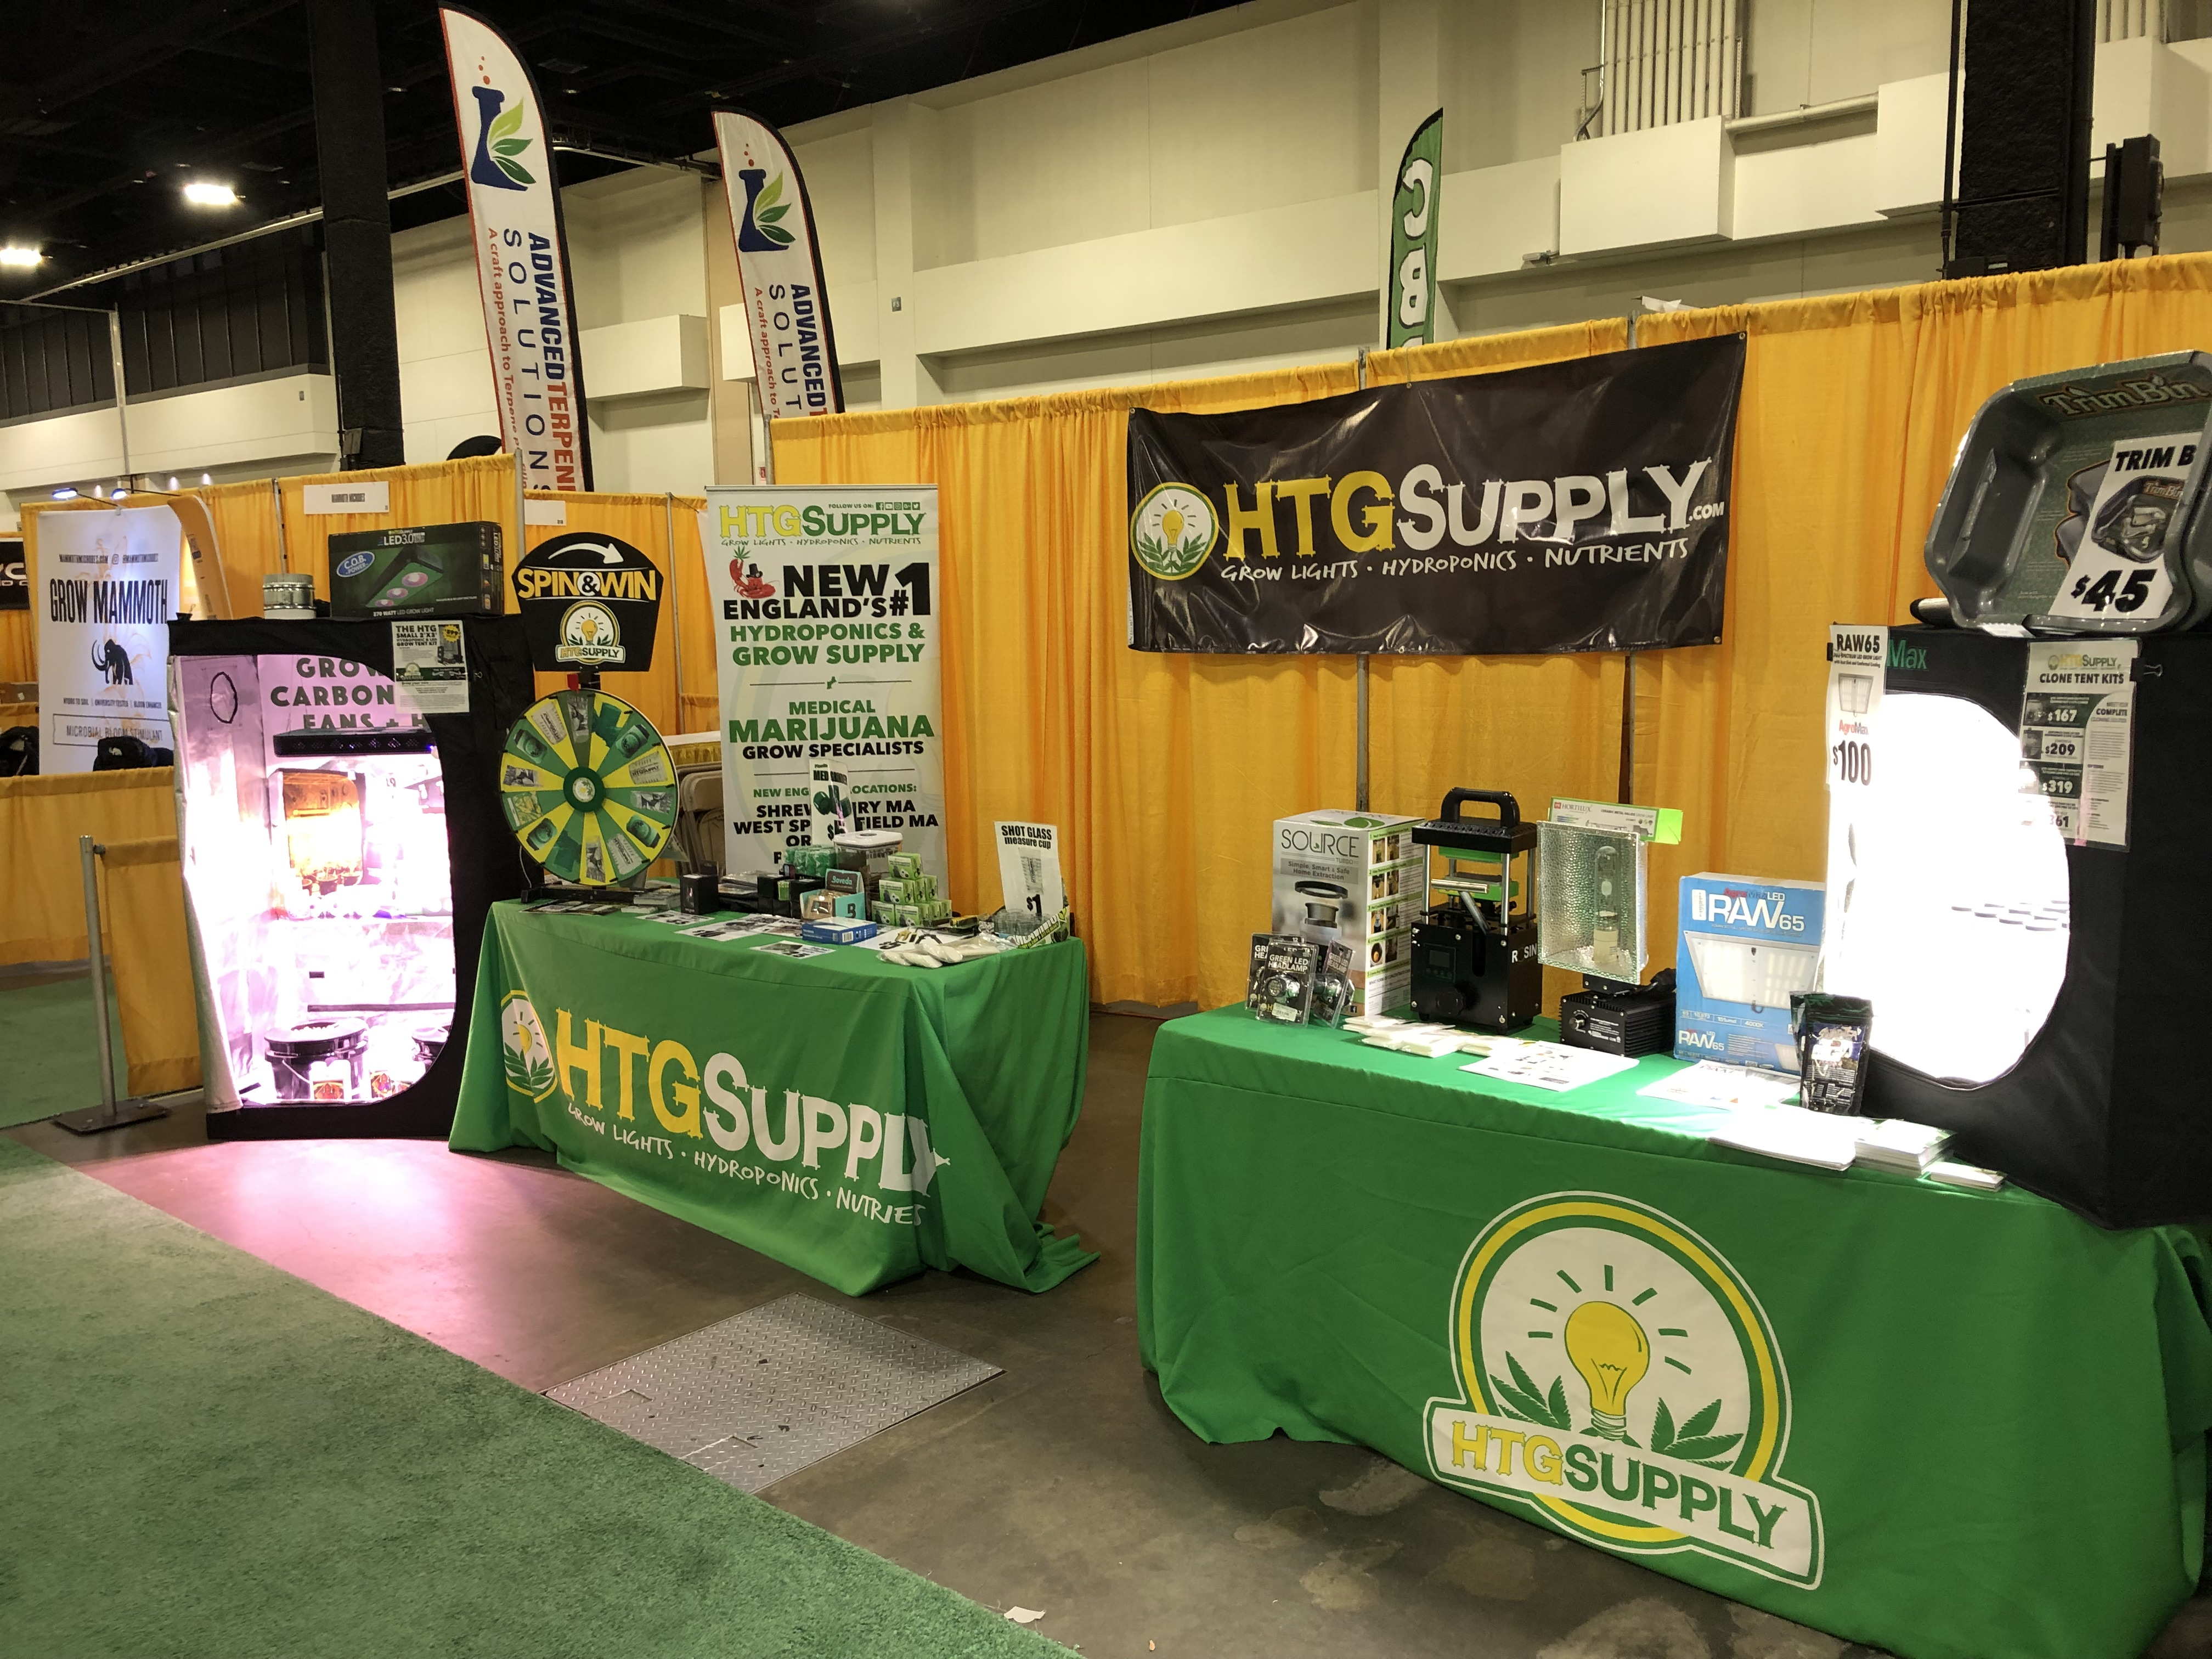 An HTG Supply booth at a convention.